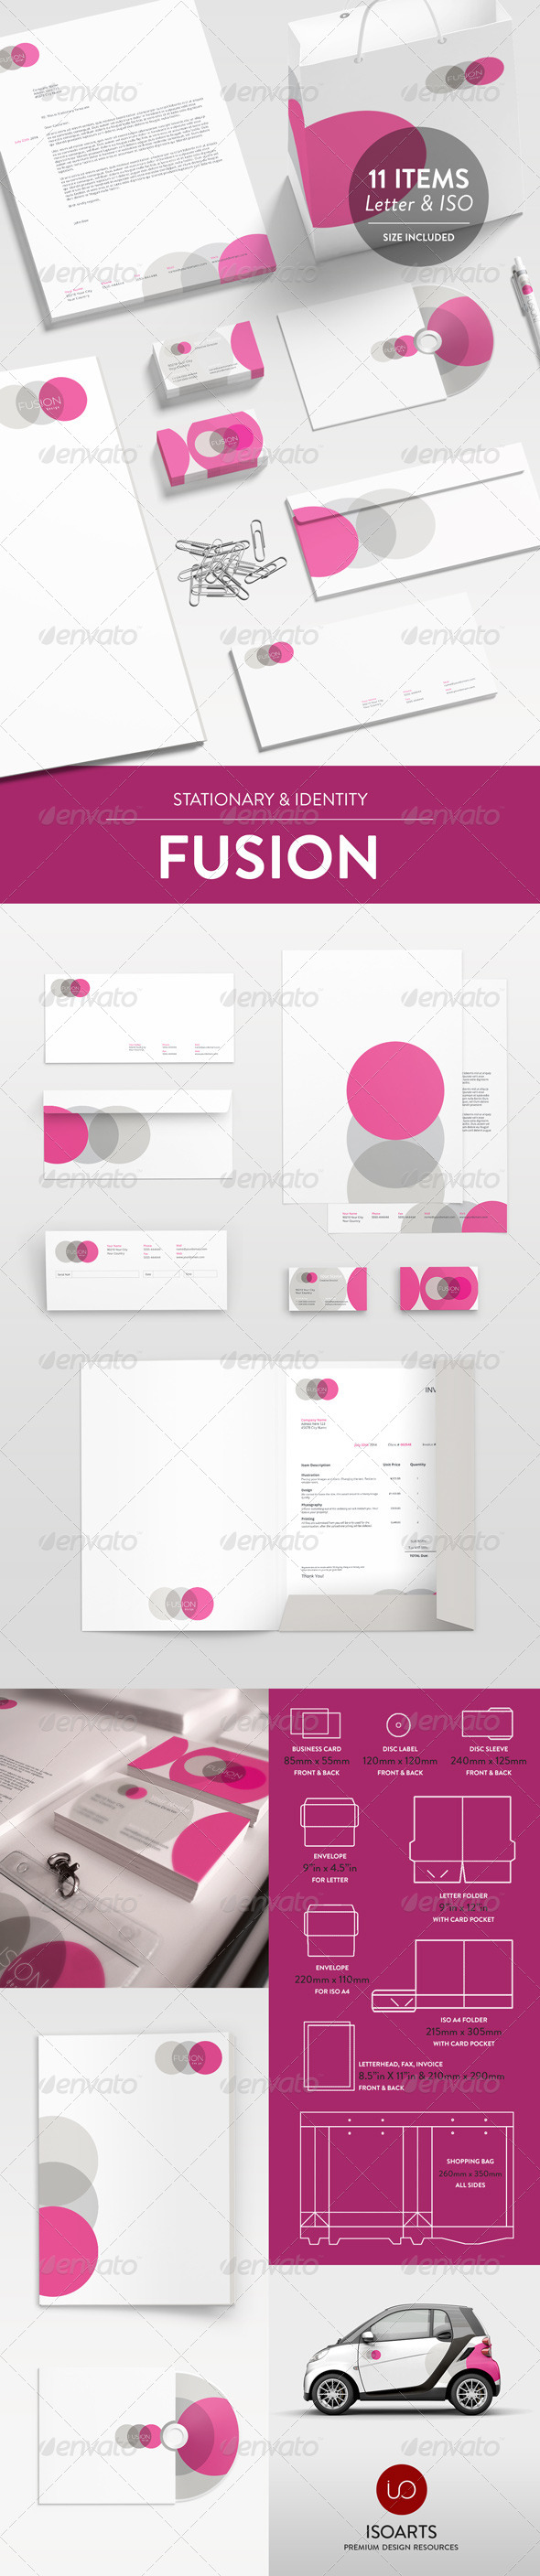 Fusion Series - Stationary & Identity - Stationery Print Templates